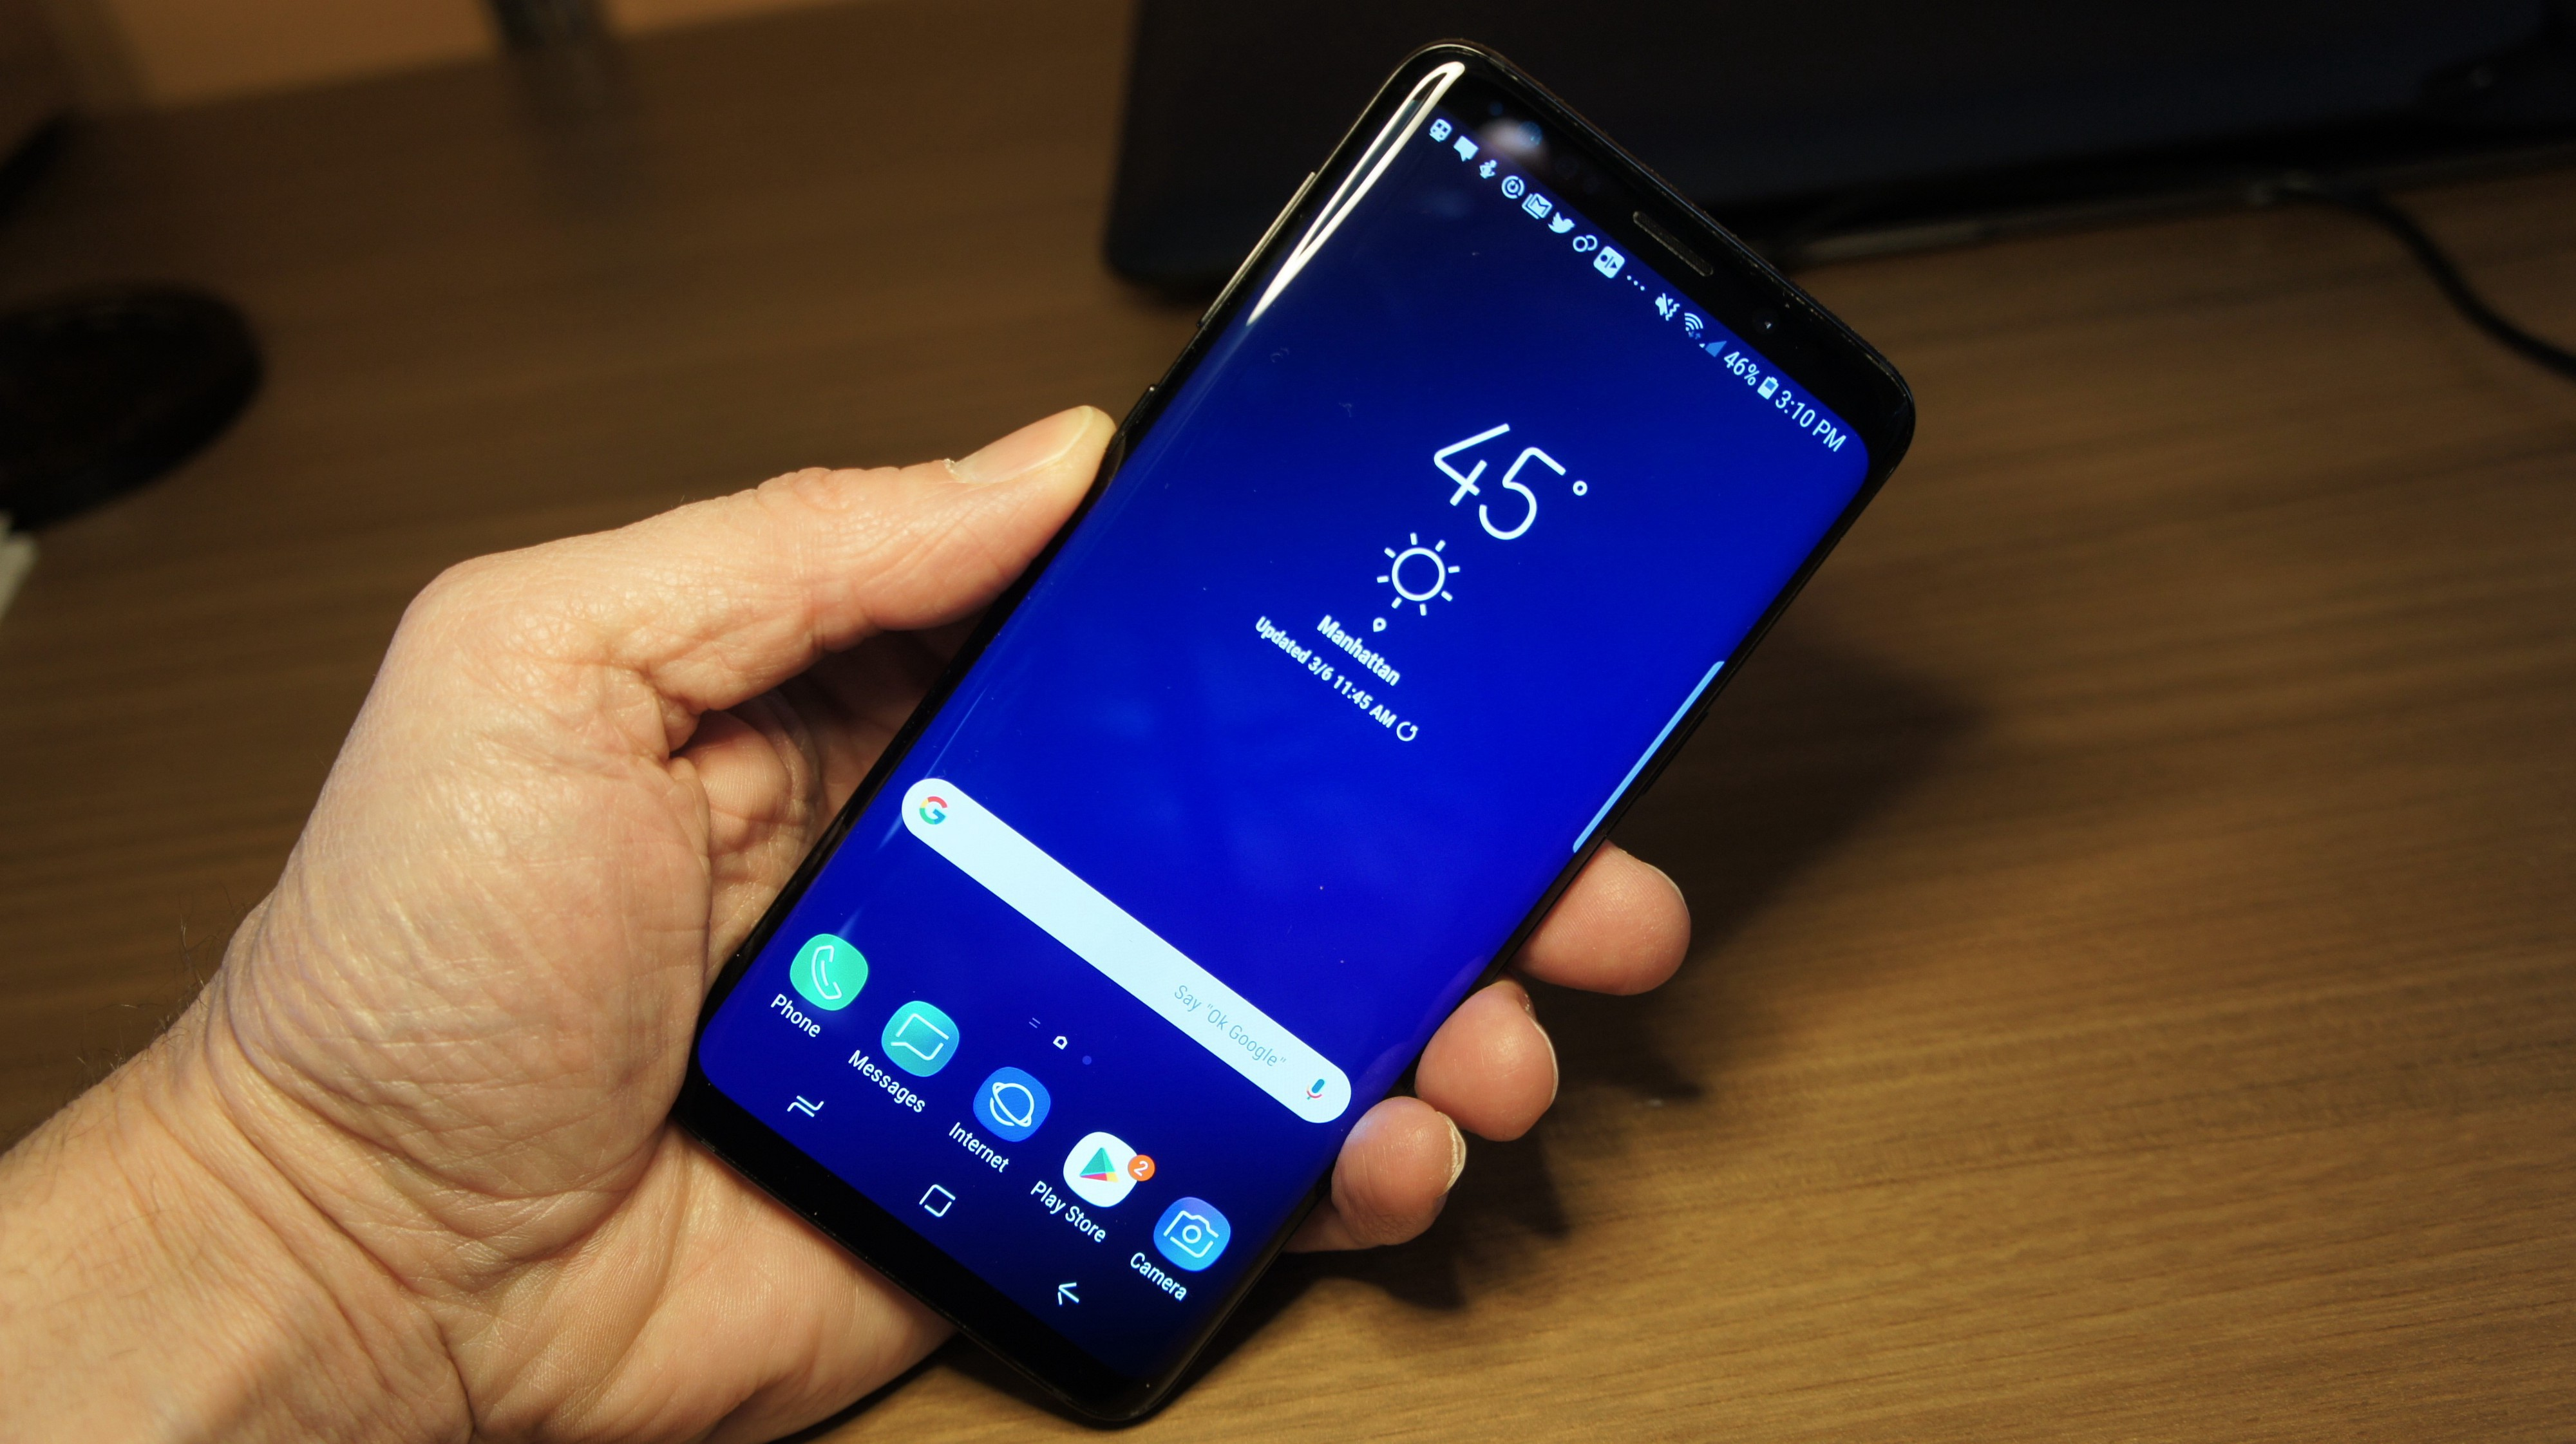 Samsung Galaxy S9 is the Android you want - Lance Ulanoff